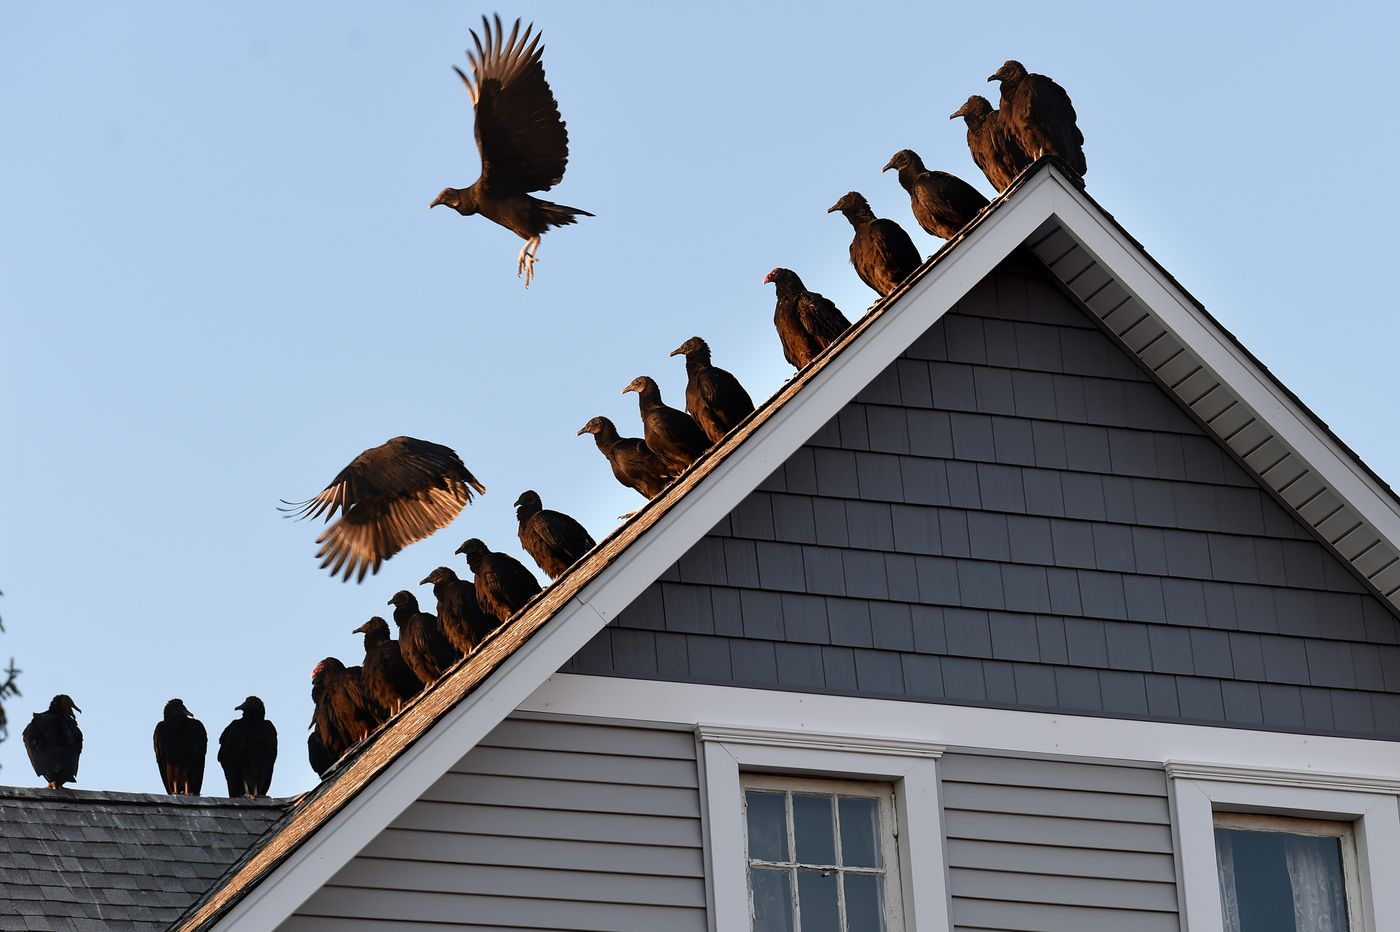 Hundreds Of Vultures Flood A N J Town Some Want Them To